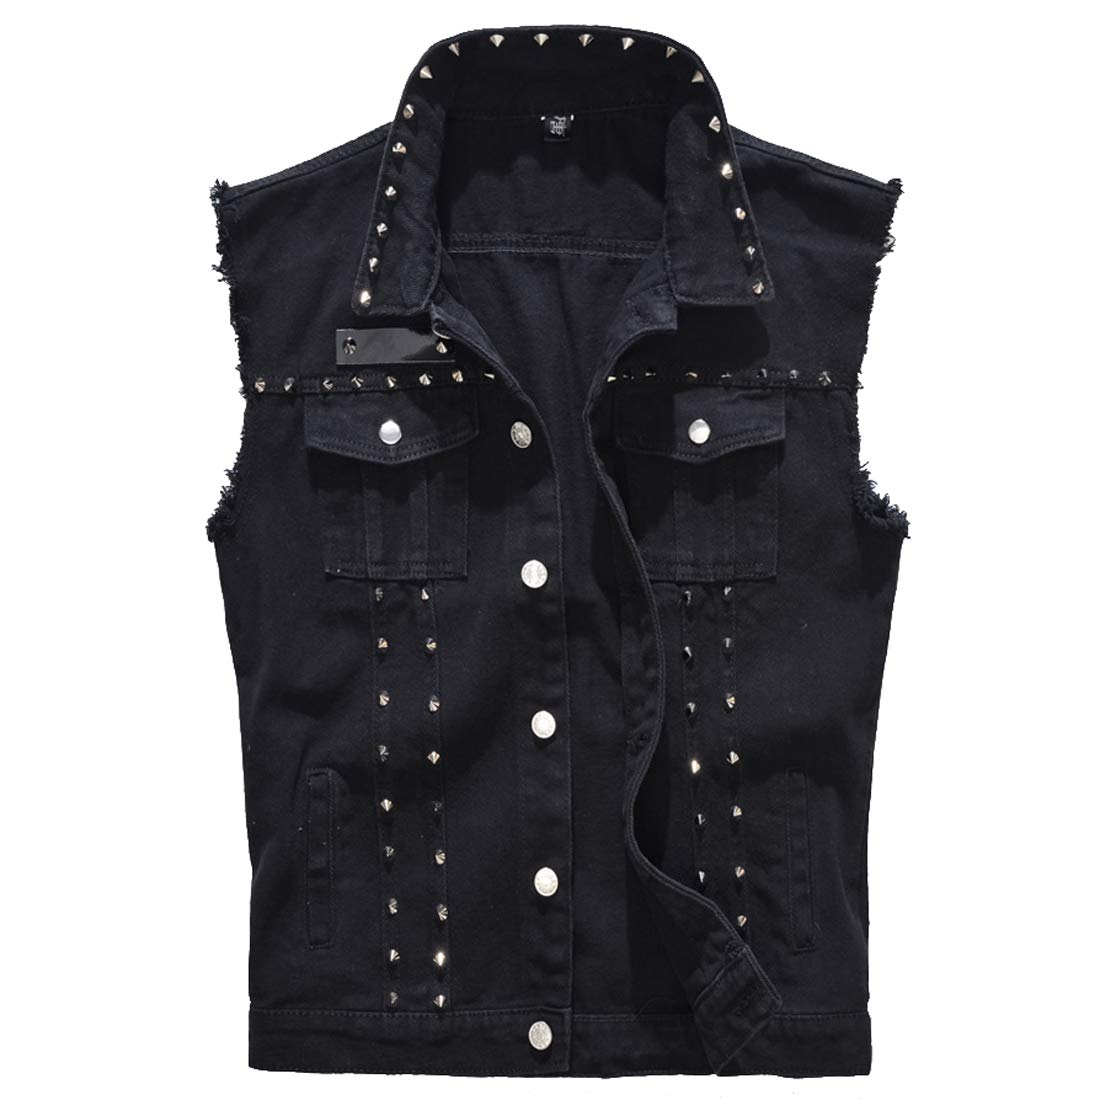 TeamWorld Mens Spring Summer Destroyed Vintage Denim Jacket Waistcoat Blouse Vest Top,Boys Retro Rivet Sleeveless Denim Gilets